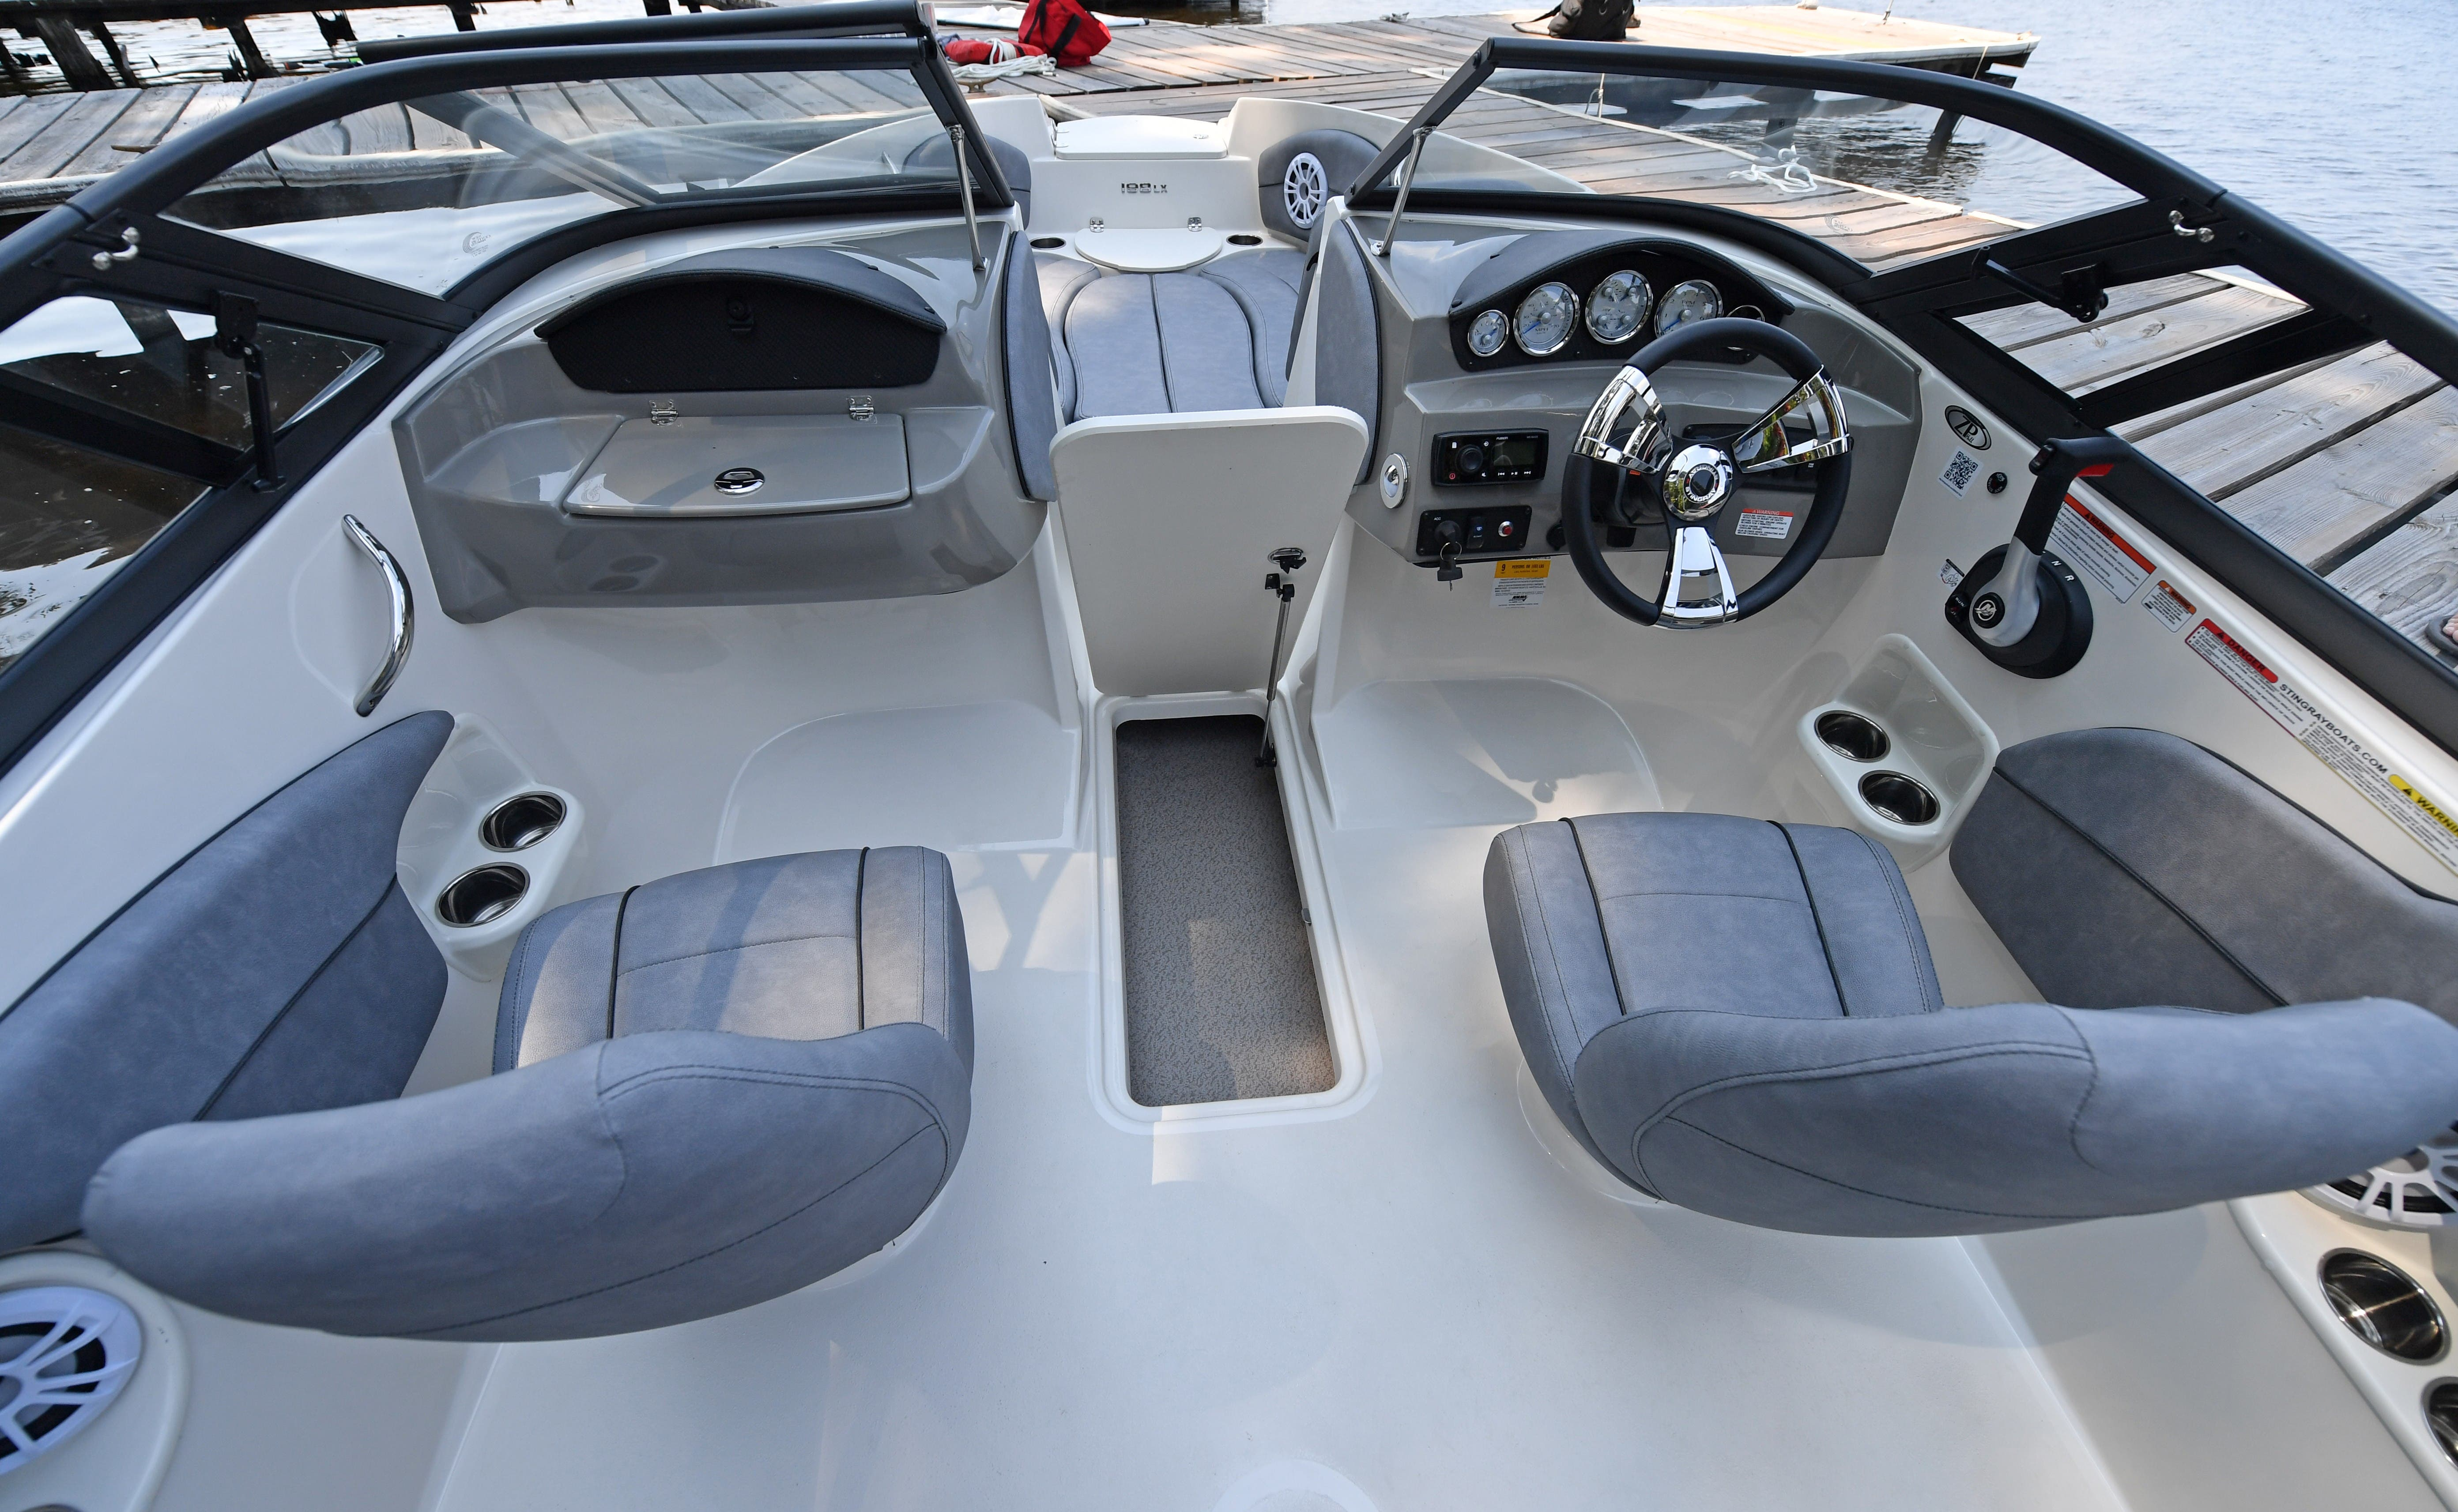 2021 Stingray boat for sale, model of the boat is 198LX & Image # 7 of 11